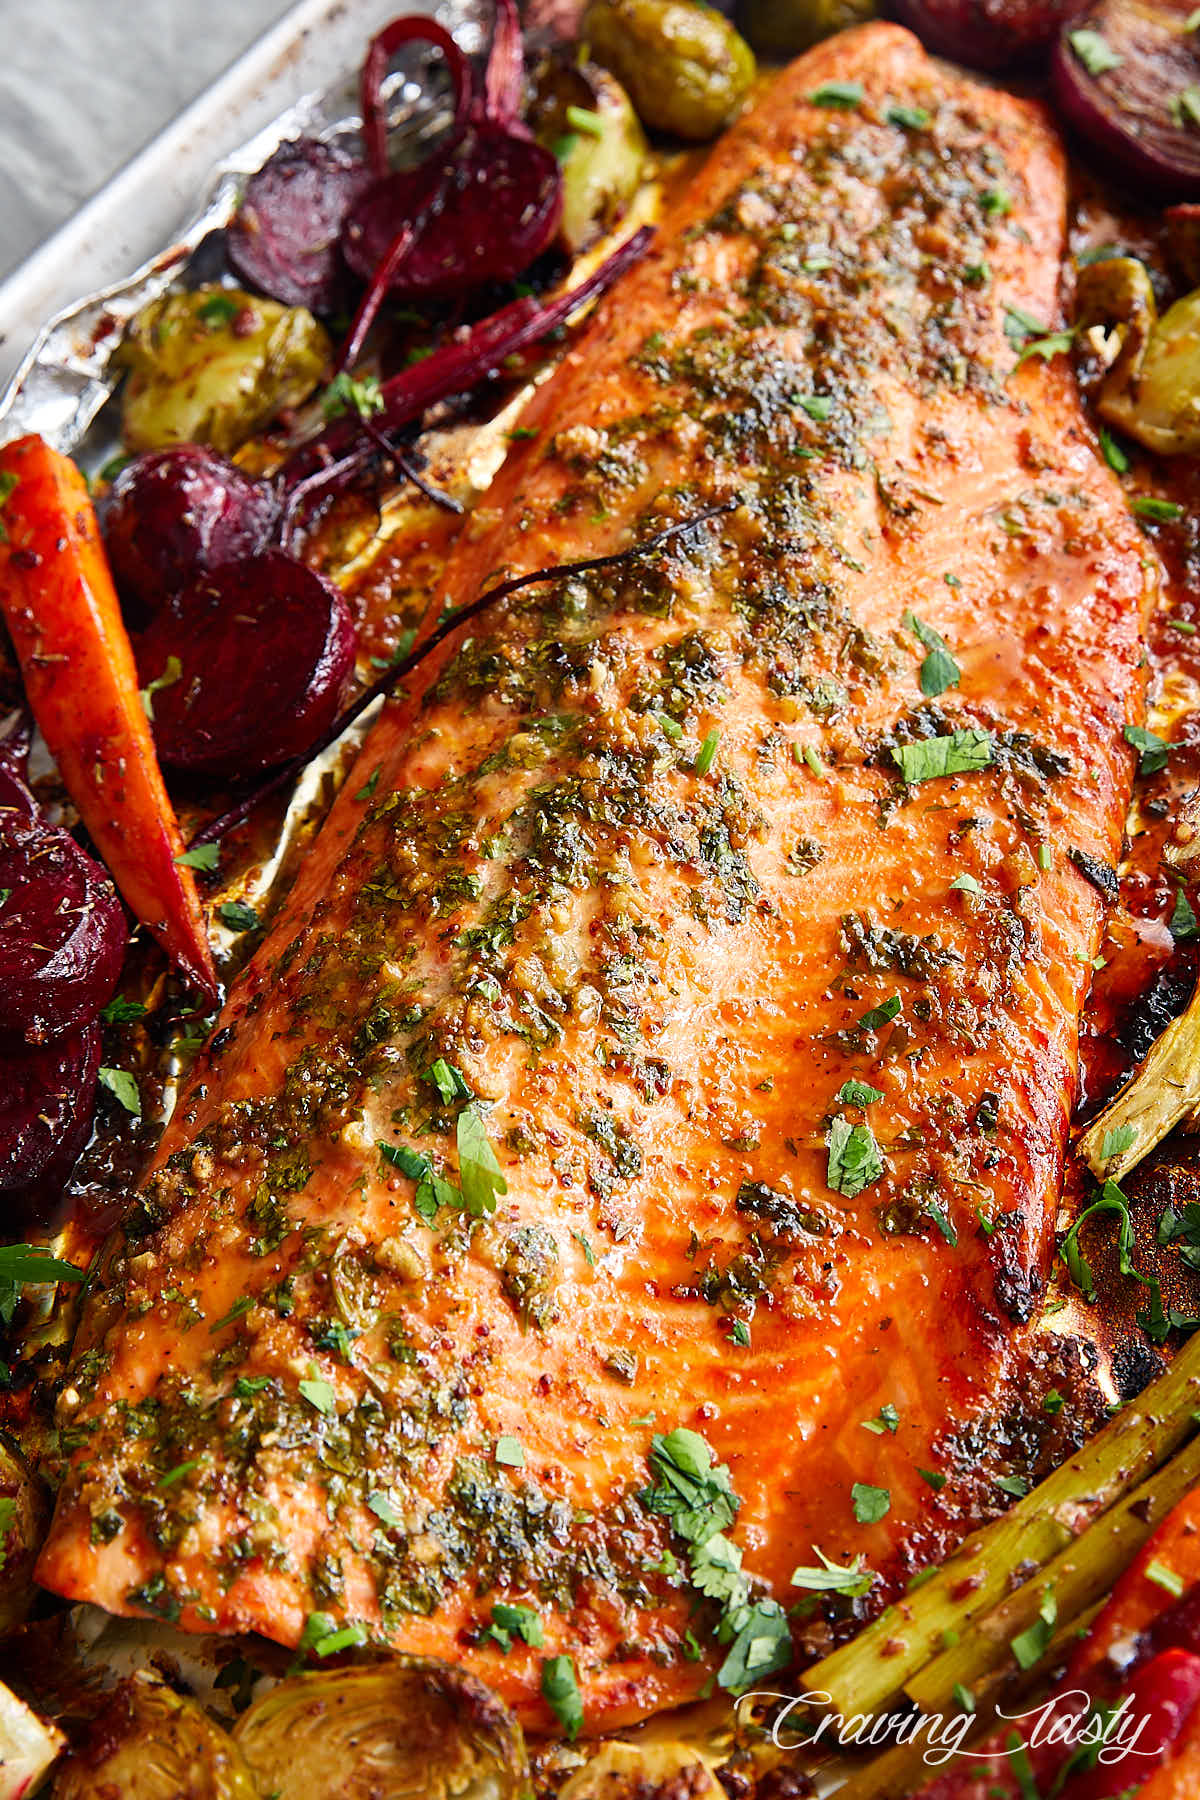 Steelhead trout filet on a piece of foil surrounded by roasted vegetables.